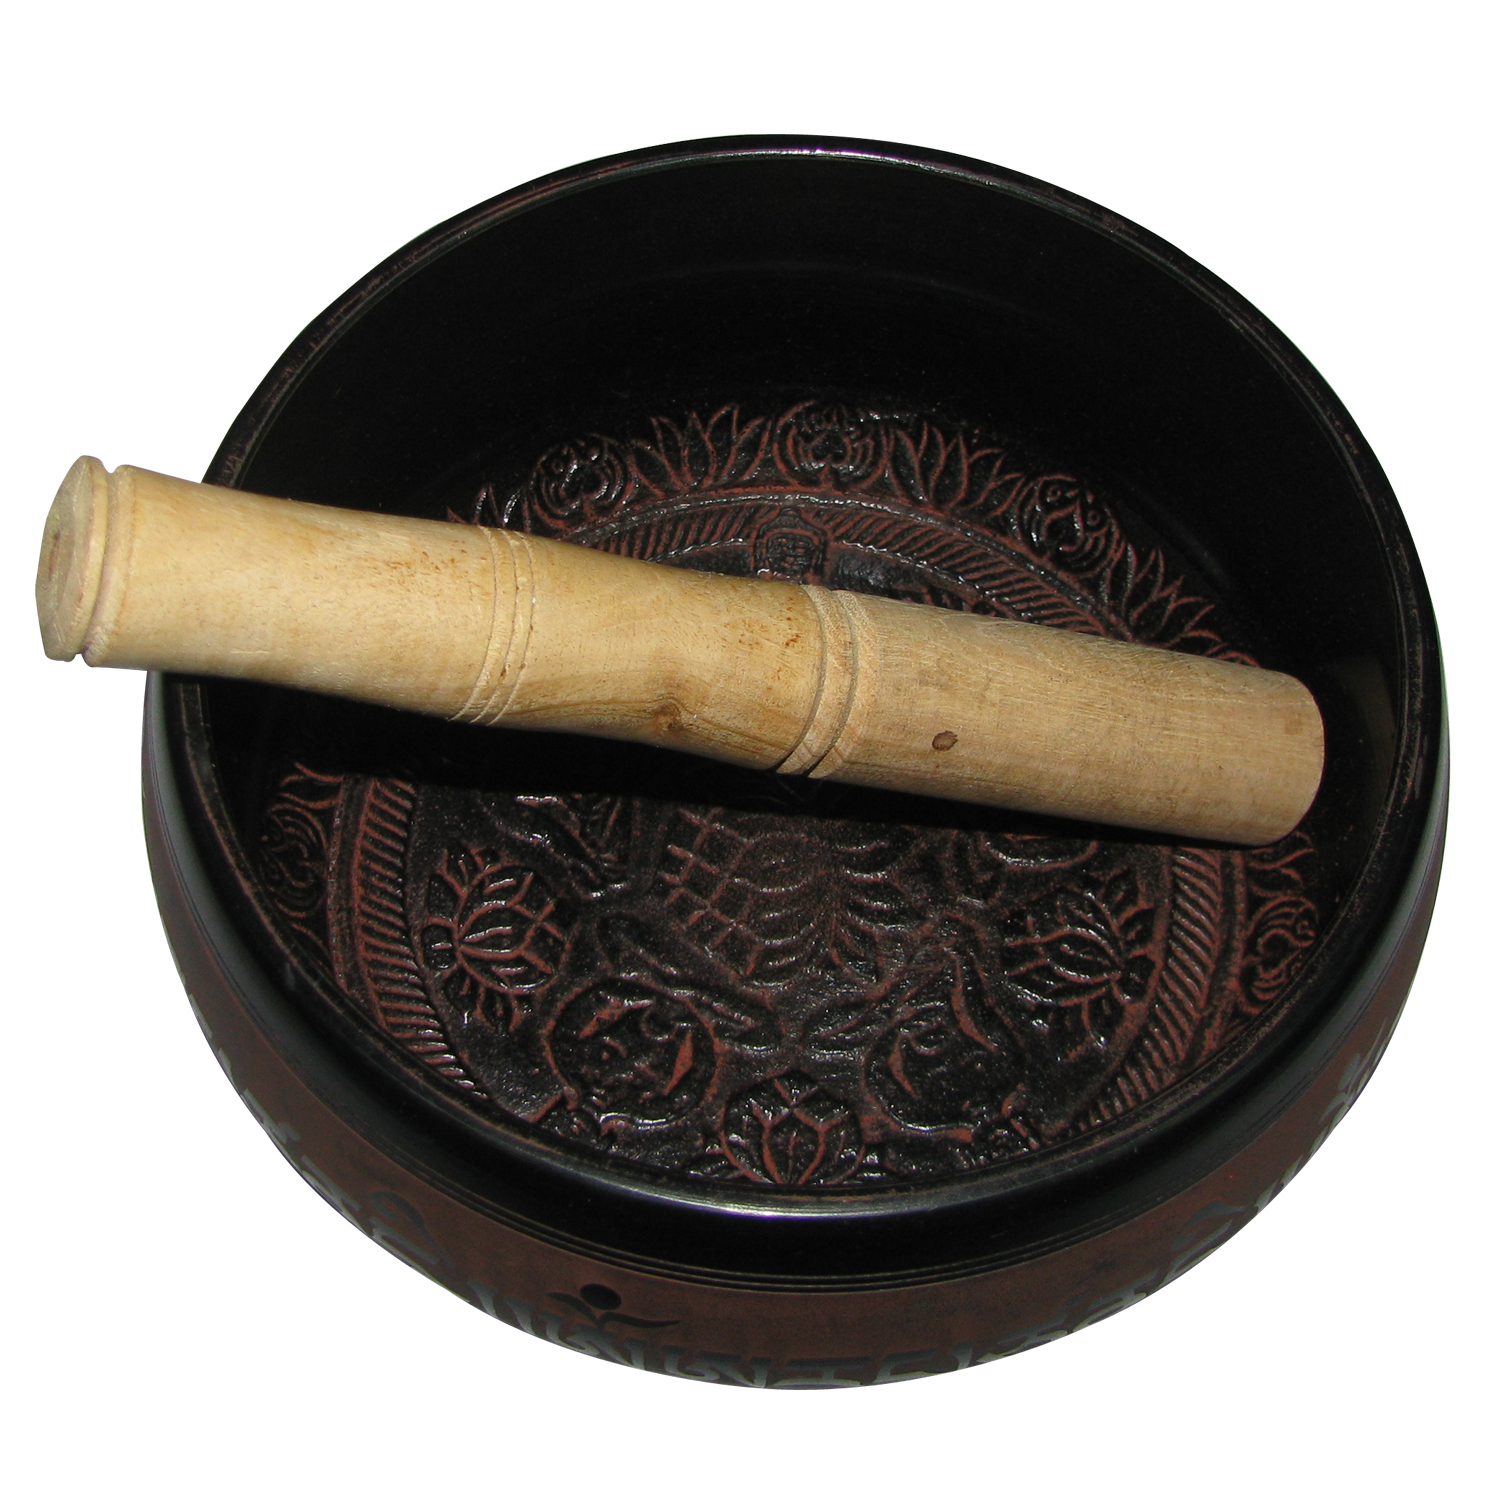 Antique Tibetan Singing Bowl Om Chanting Bowl Rin Gongs Himalayan Bowls  Suzu Gongs Meditation Bowl Buddhist Meditation – A0004